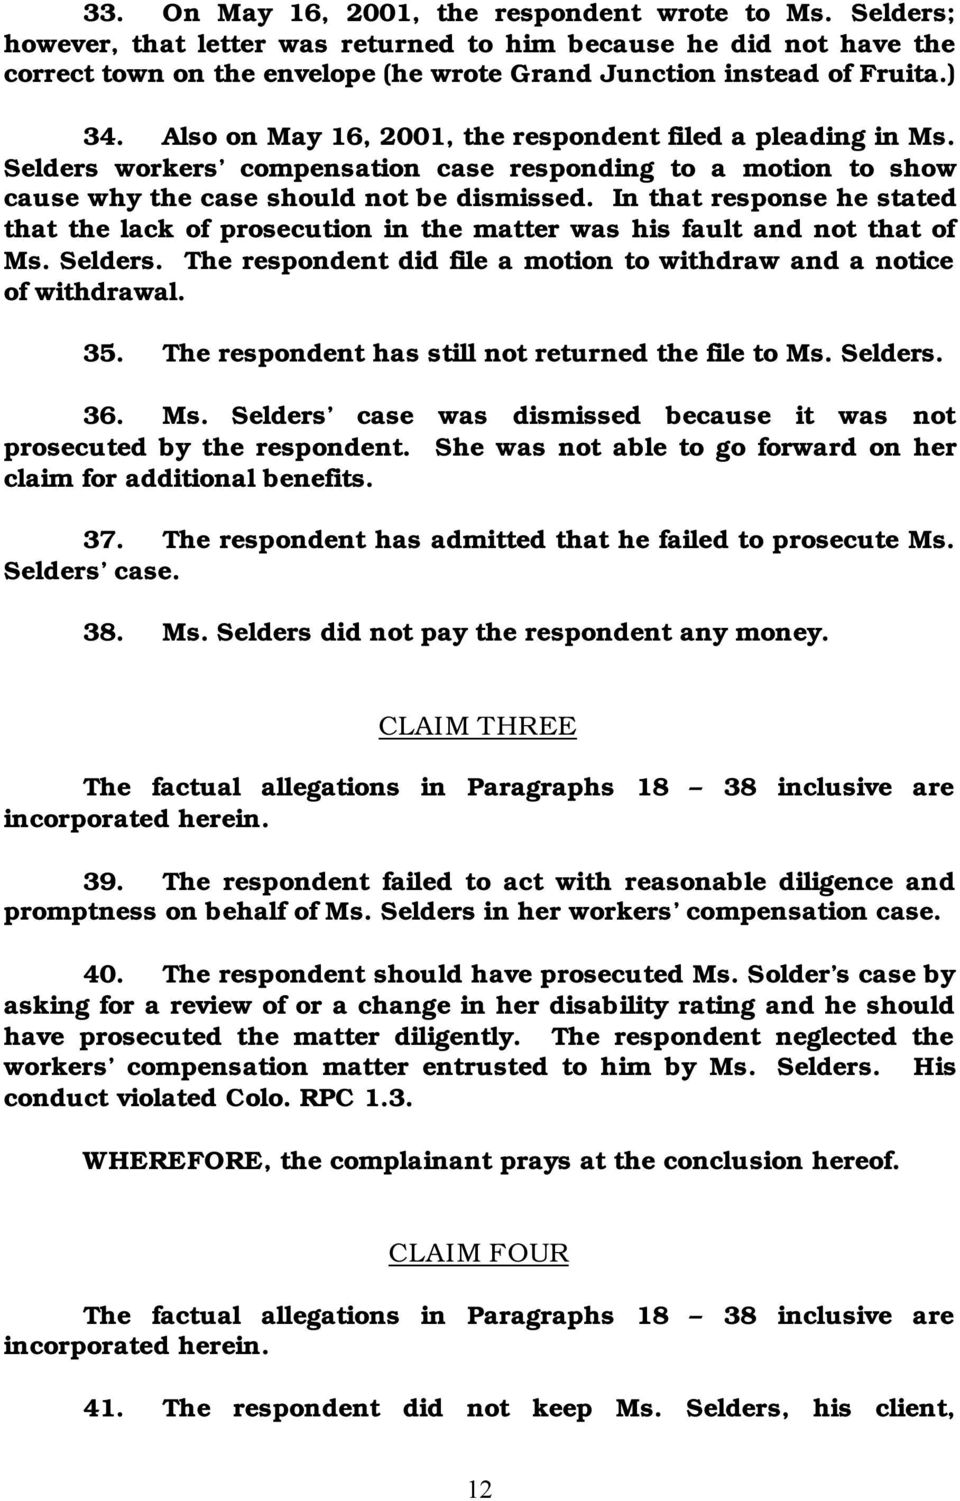 In that response he stated that the lack of prosecution in the matter was his fault and not that of Ms. Selders. The respondent did file a motion to withdraw and a notice of withdrawal. 35.